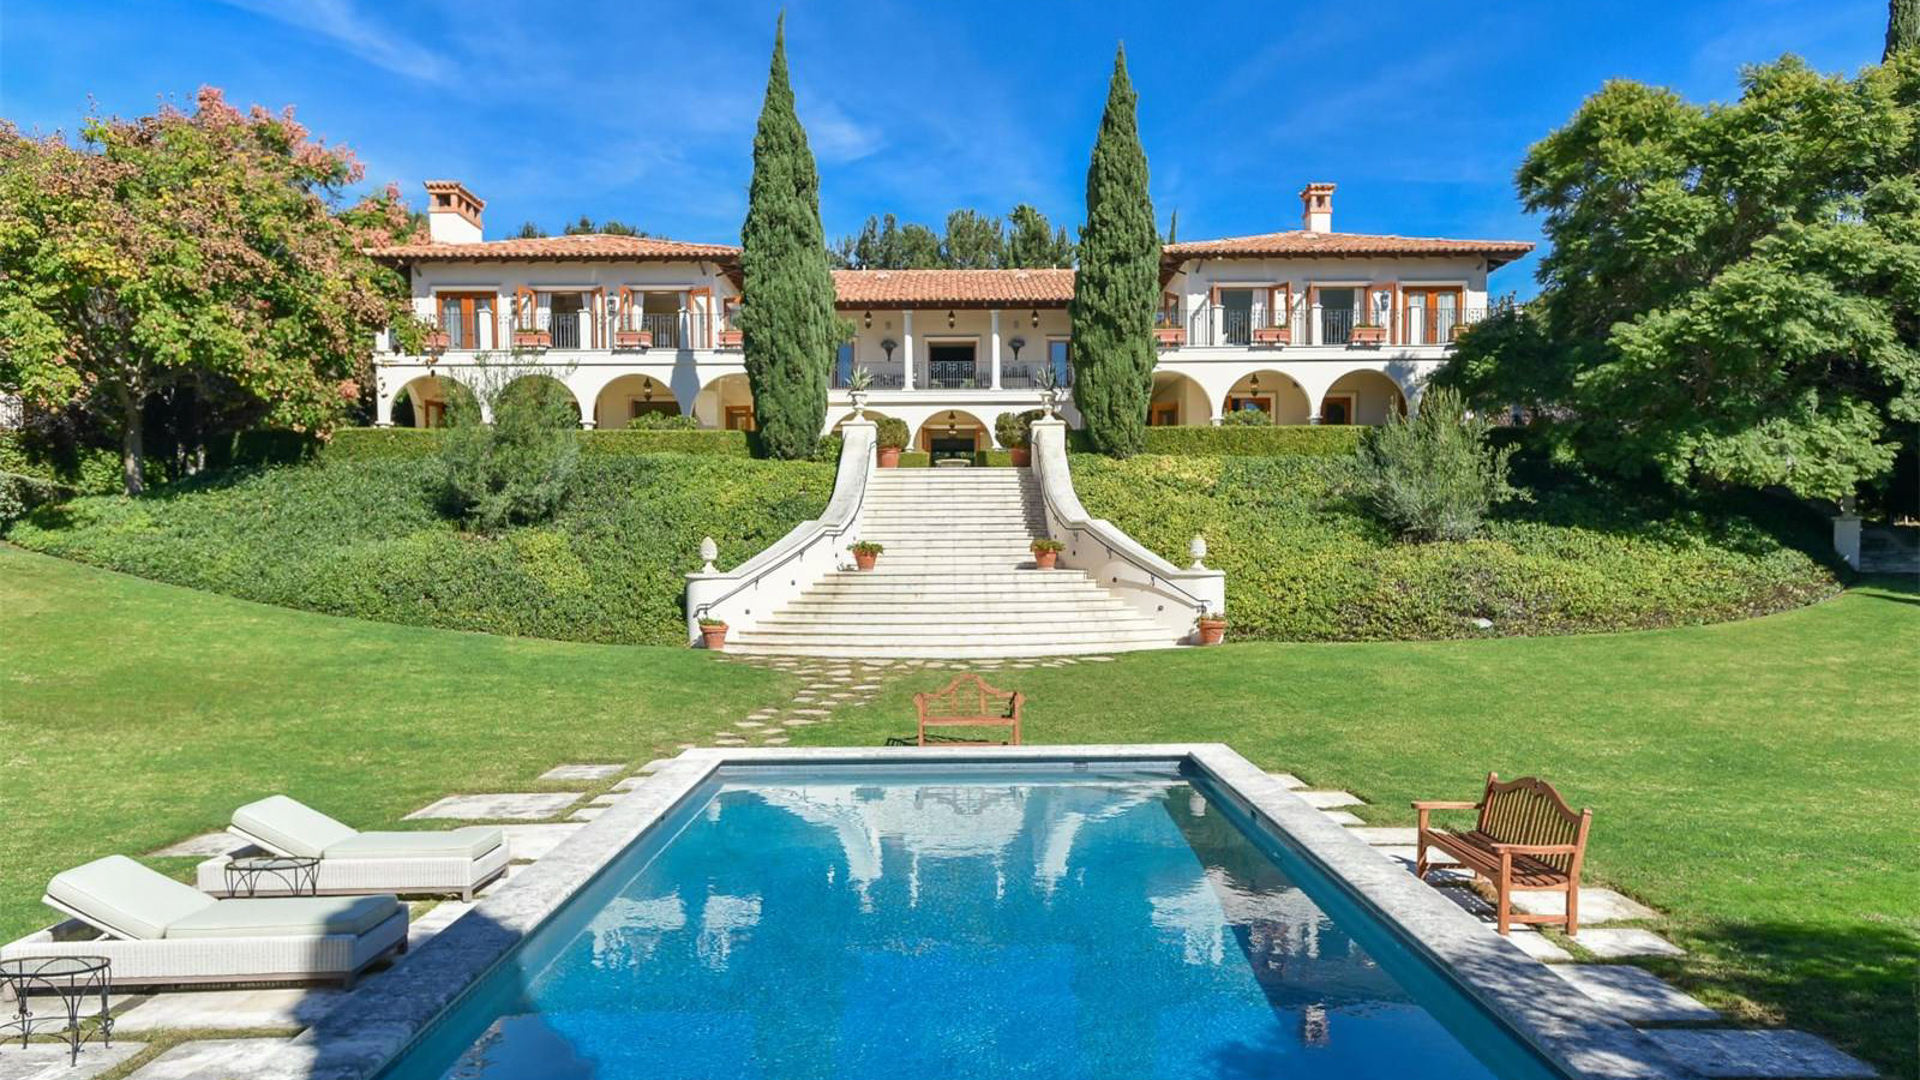 7 Garden-View Mansions Sure To Grow On You